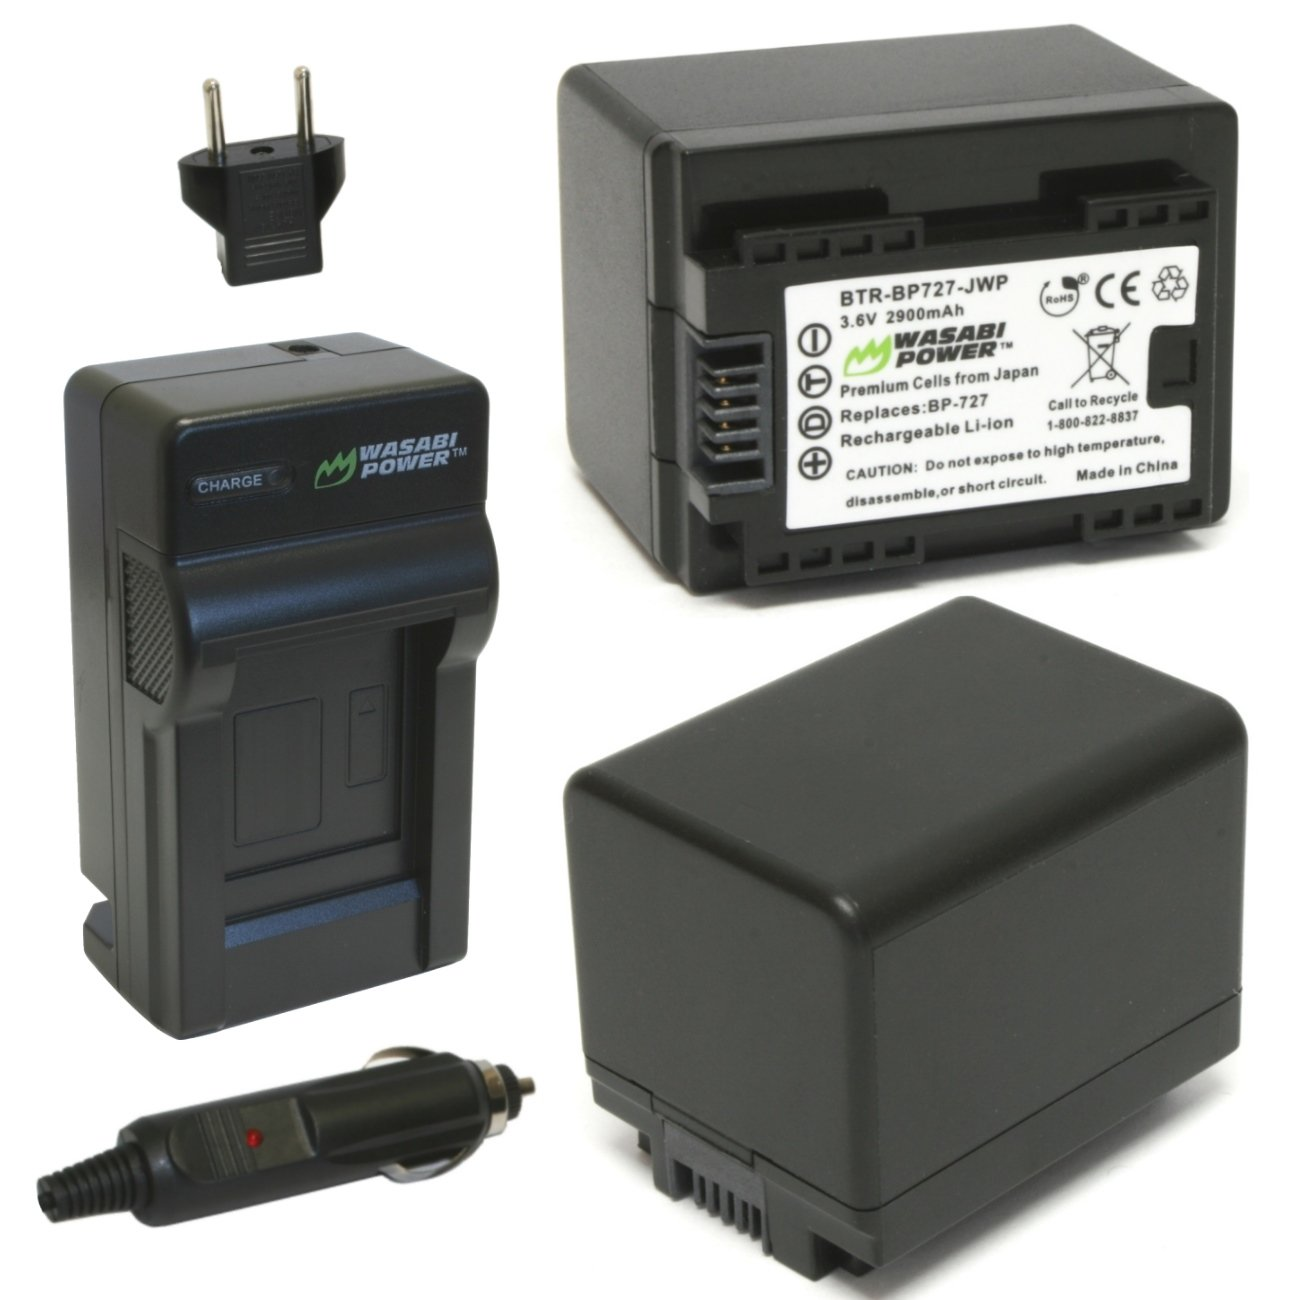 Wasabi Power Battery (2-Pack) and Charger for Canon BP-727, CG-700 and Canon VIXIA HF M50, HF M52, HF M500, HF R30, HF R32, HF R40, HF R42, HF R50, HF R52, HF R60, HF R62, HF R300, HF R400, HF R500, HF R600